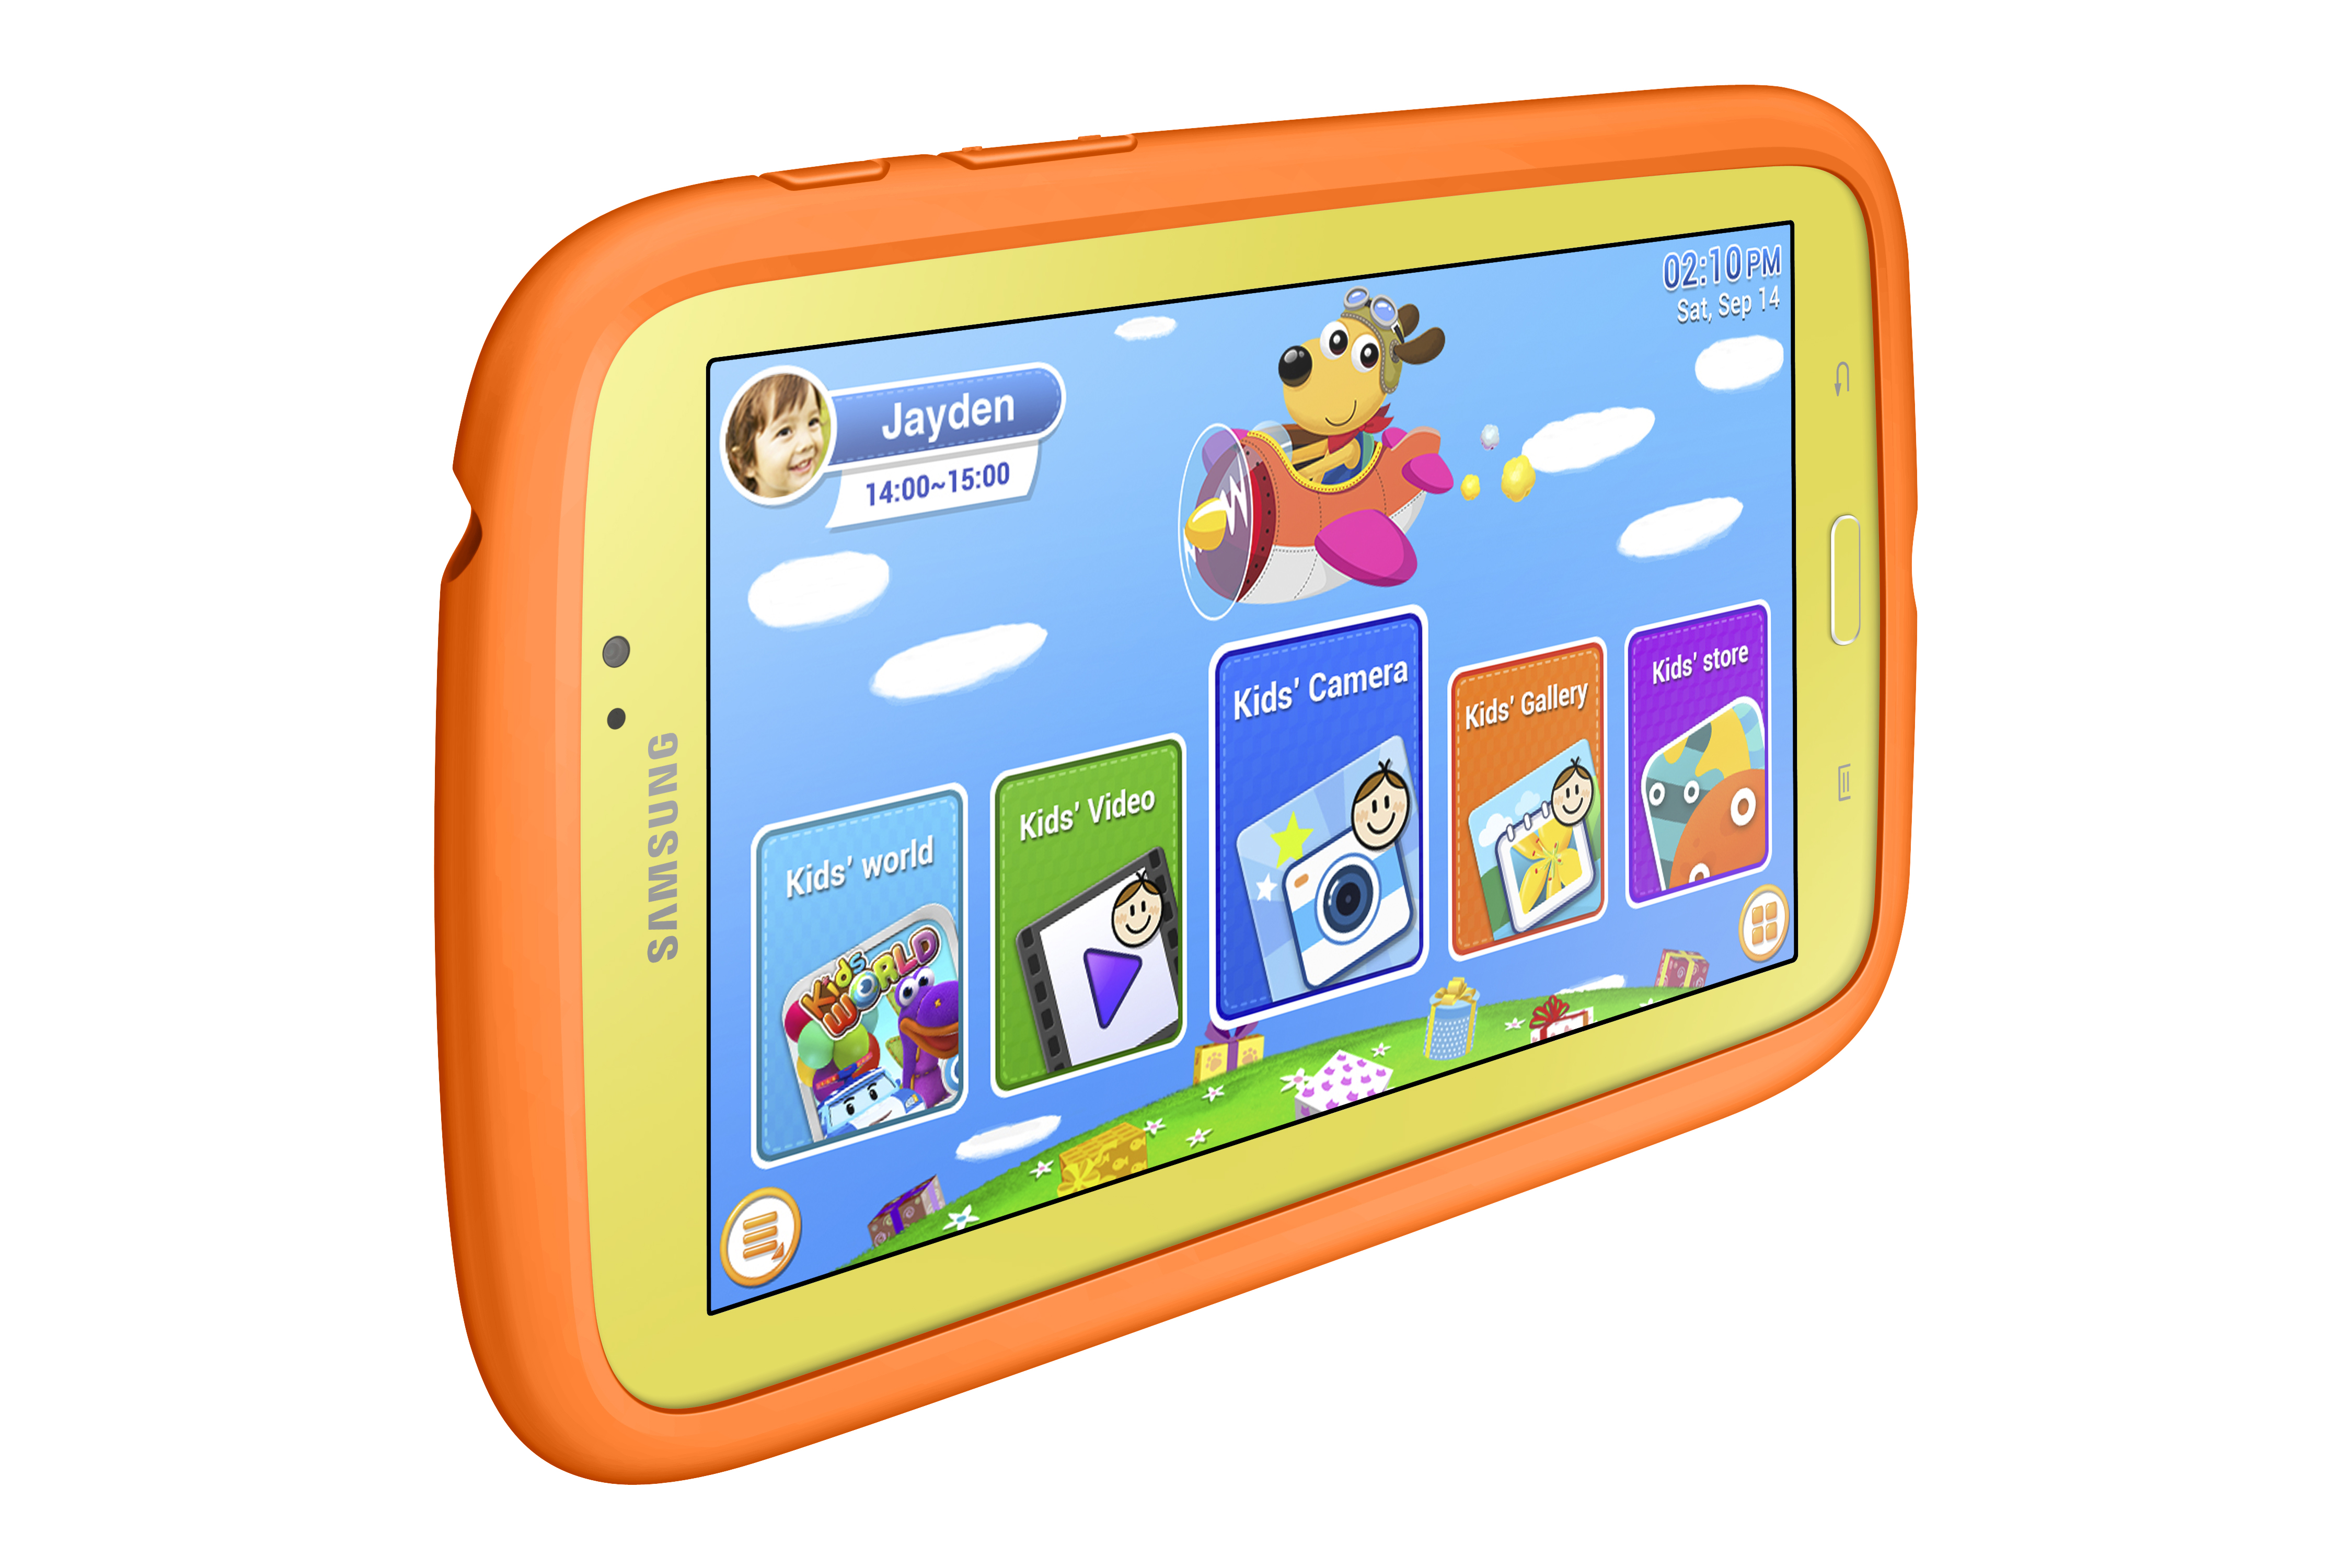 An integrated bumper case protects this device from drops and falls, and parental controls let you limit the time your little ones can play. With apps from Dreamworks, Sesame Street and National Geographic, the Samsung Kids Tab E Lite makes learning fun.